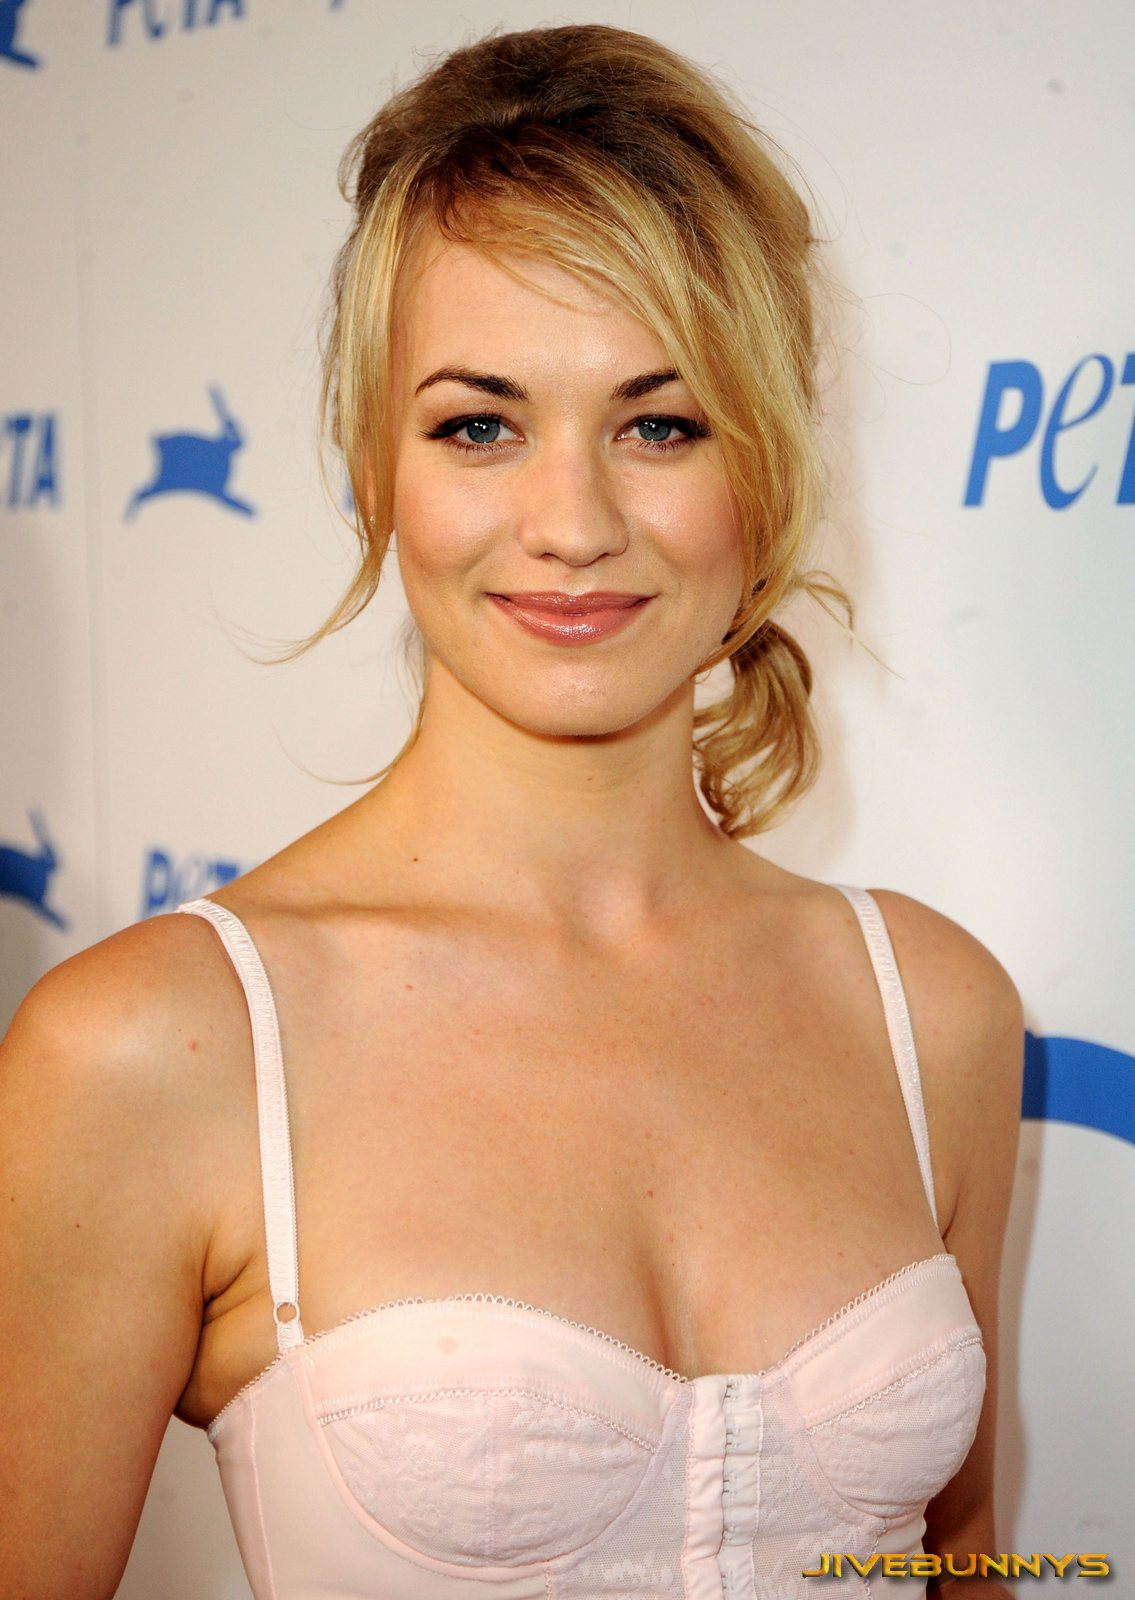 yvonne strahovski 2007yvonne strahovski 2017, yvonne strahovski site, yvonne strahovski facebook, yvonne strahovski married, yvonne strahovski chuck gif, yvonne strahovski voice, yvonne strahovski youtube, yvonne strahovski fan, yvonne strahovski belly, yvonne strahovski boyfriend, yvonne strahovski bellyinc, yvonne strahovski polish, yvonne strahovski accent, yvonne strahovski family, yvonne strahovski wdw, yvonne strahovski looks like, yvonne strahovski filmleri izle, yvonne strahovski 2007, yvonne strahovski hollywood reporter, yvonne strahovski wiki